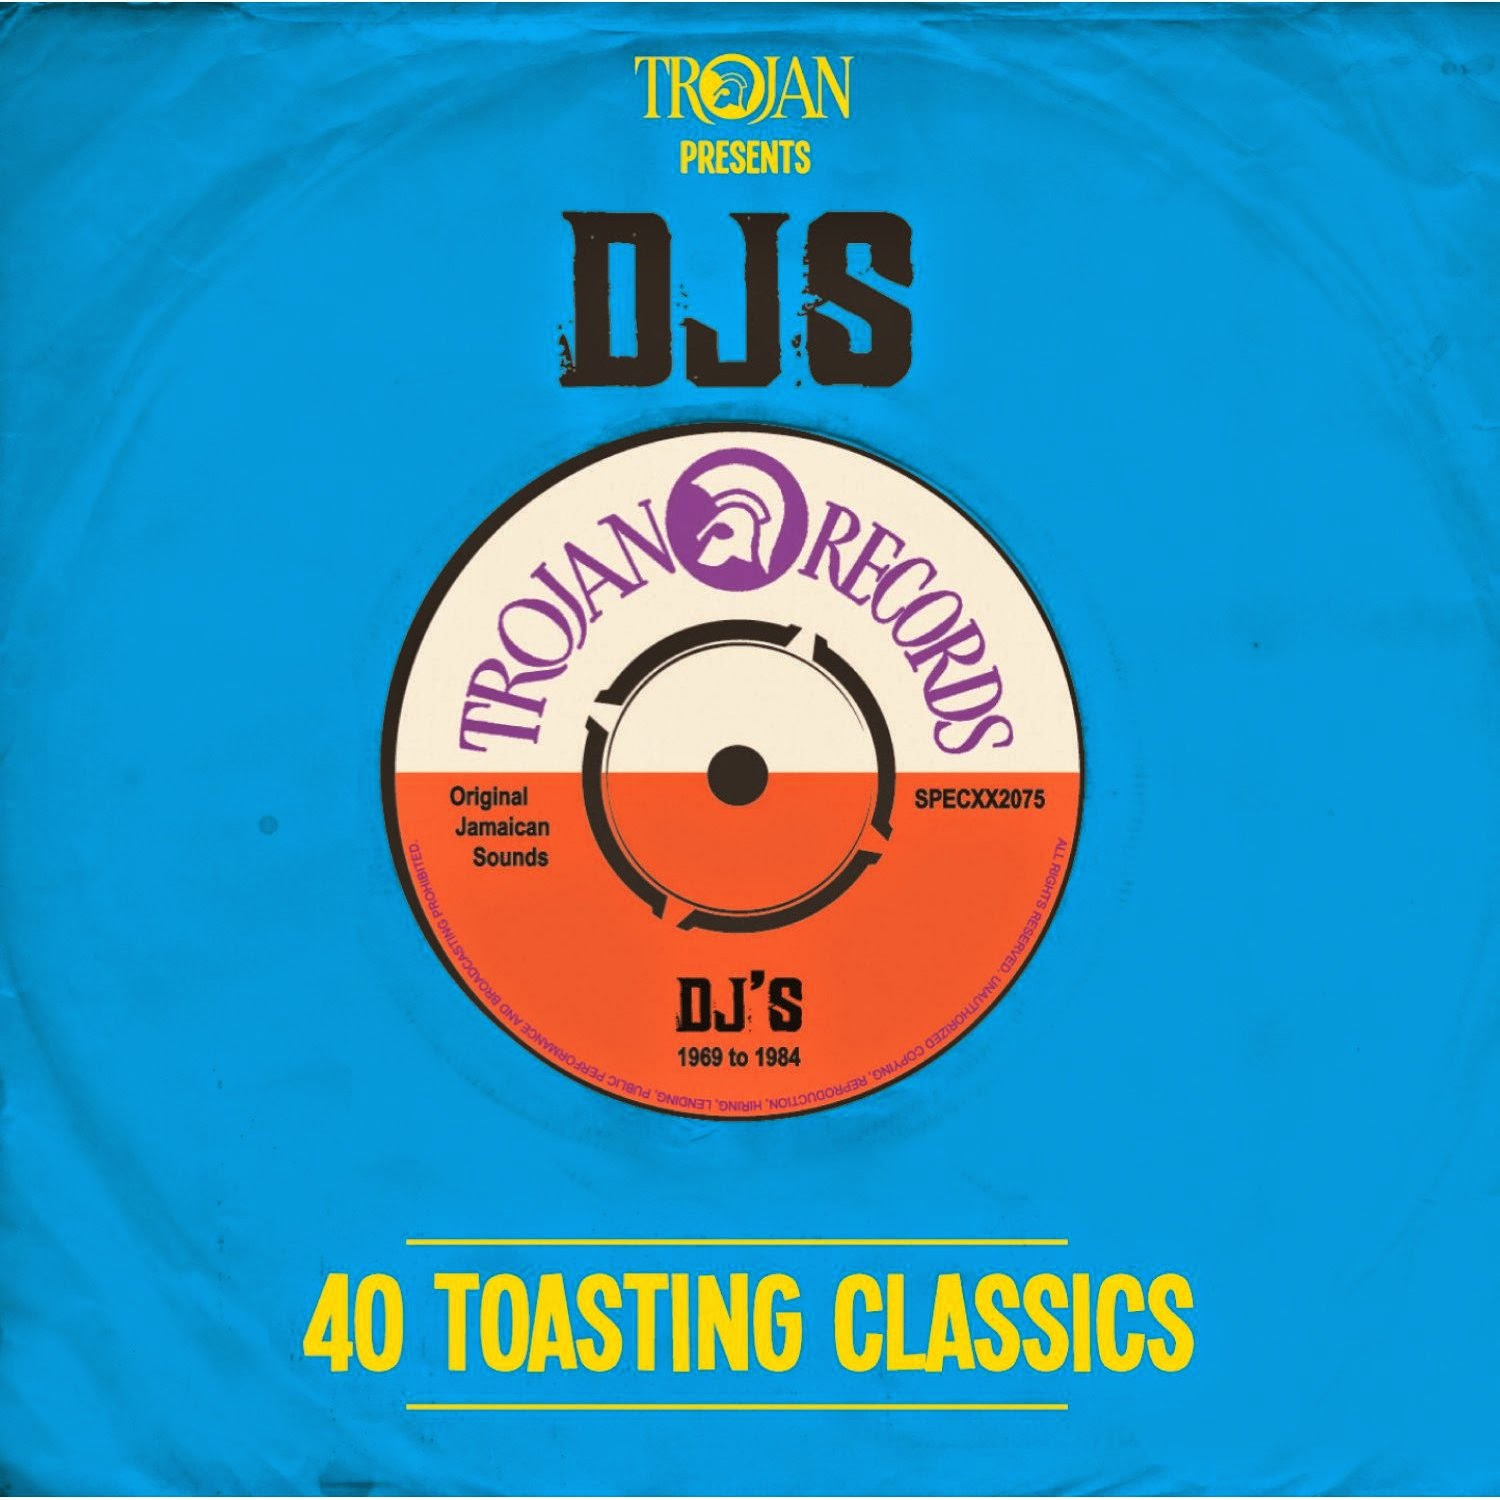 TROJAN PRESENTS DJS - 40 Toasting Classics